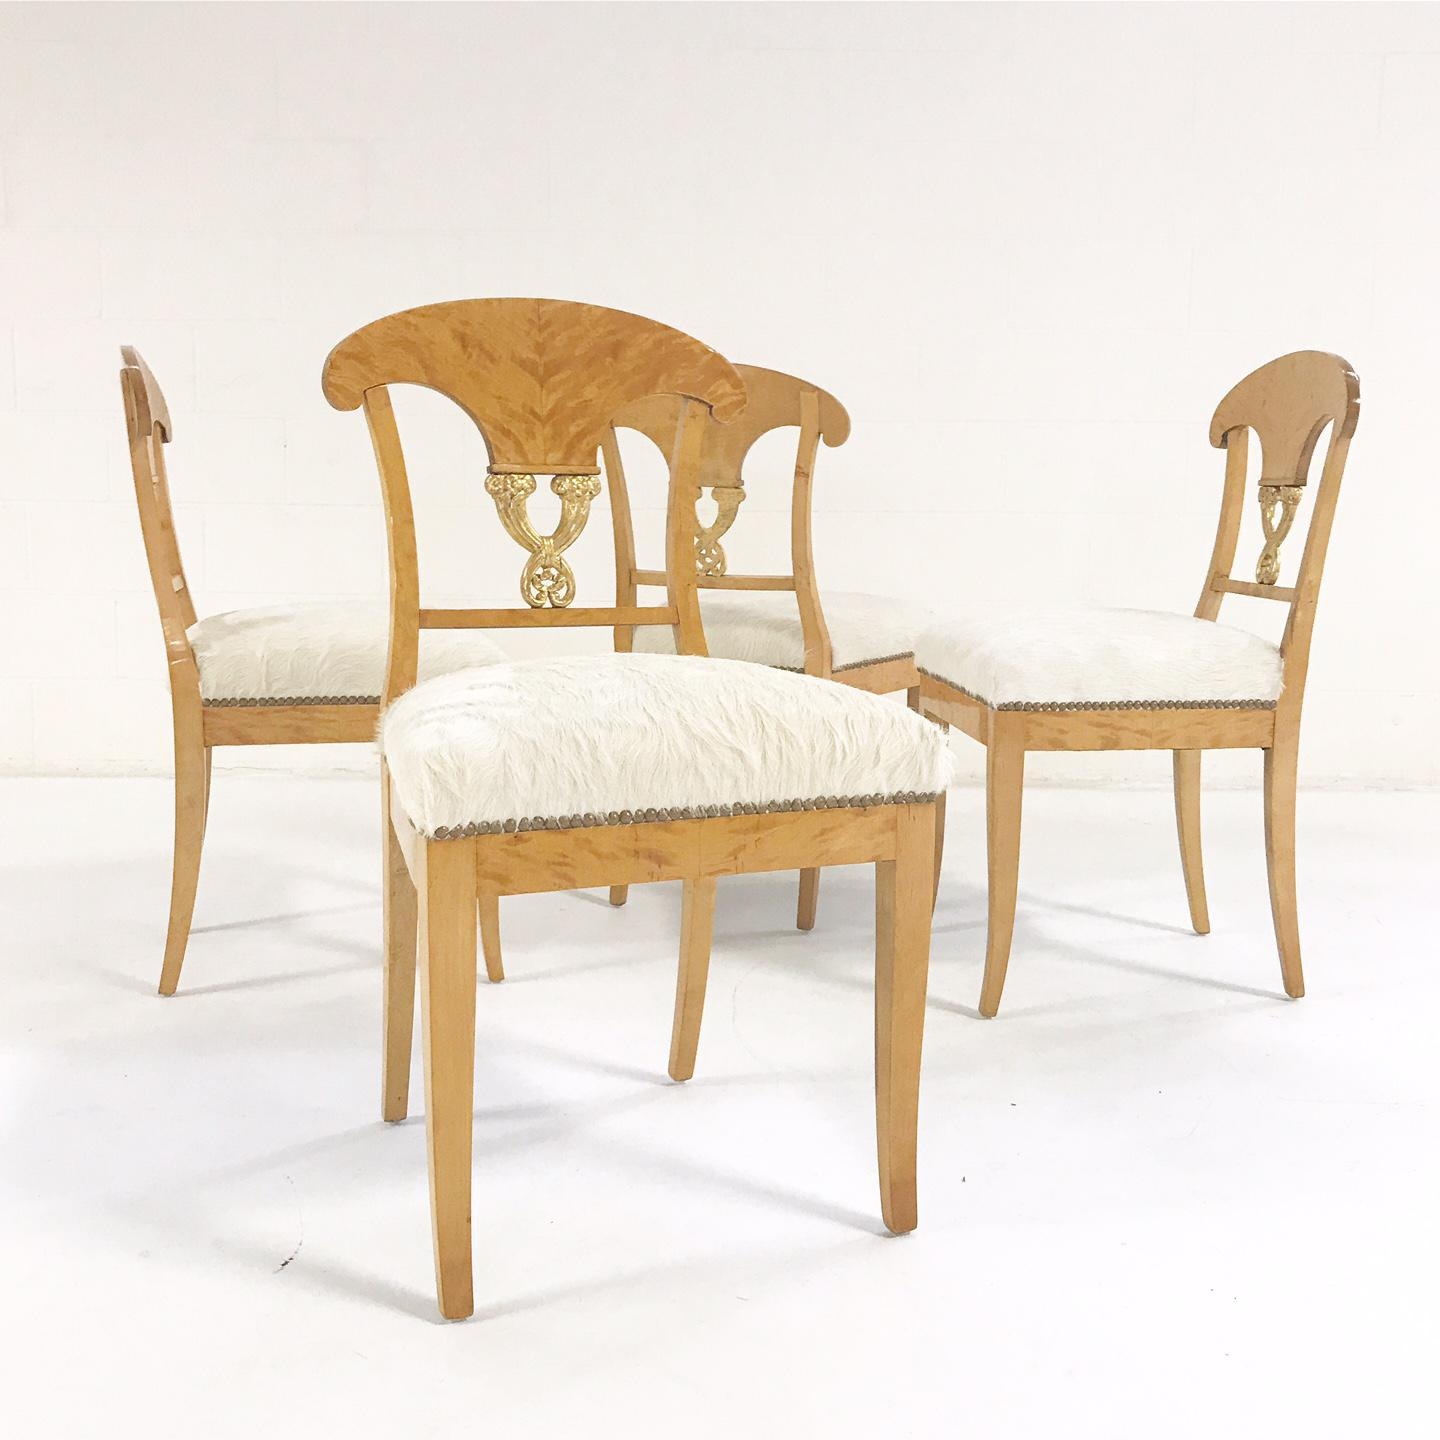 Biedermeier Forsyth One Of A Kind Circa 1820 Satin Birch Biedermeier Chairs  In Brazilian Cowhide